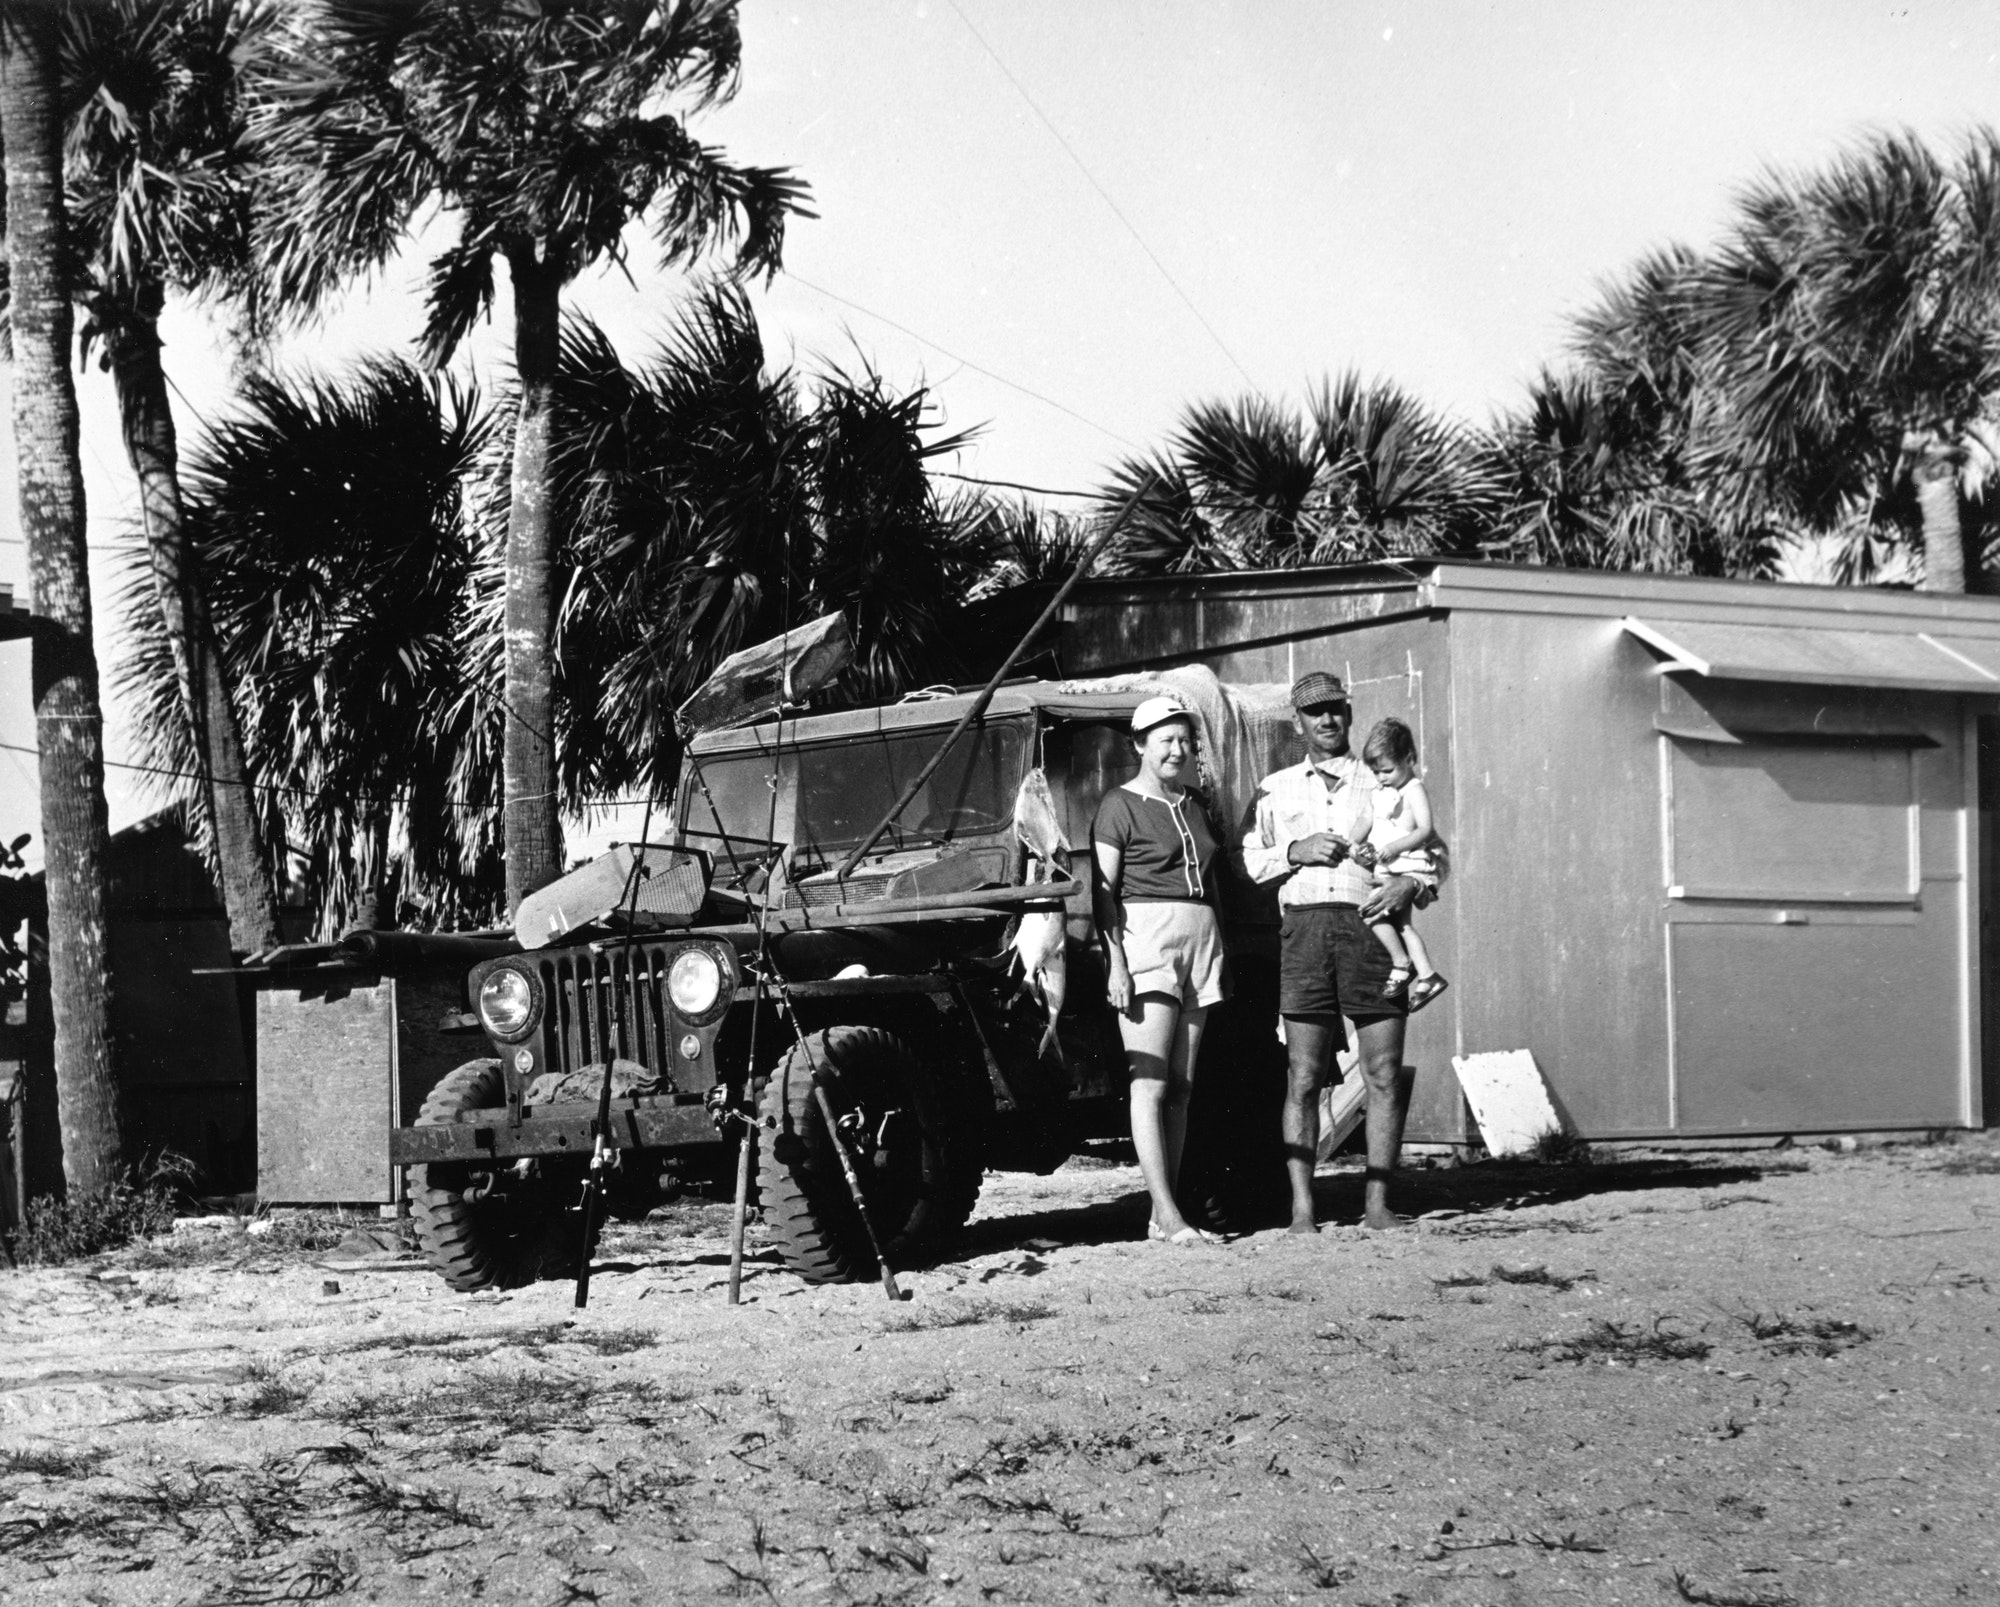 fisherman holding a small child with his wife and standing in front of jeep and shack at the inlet